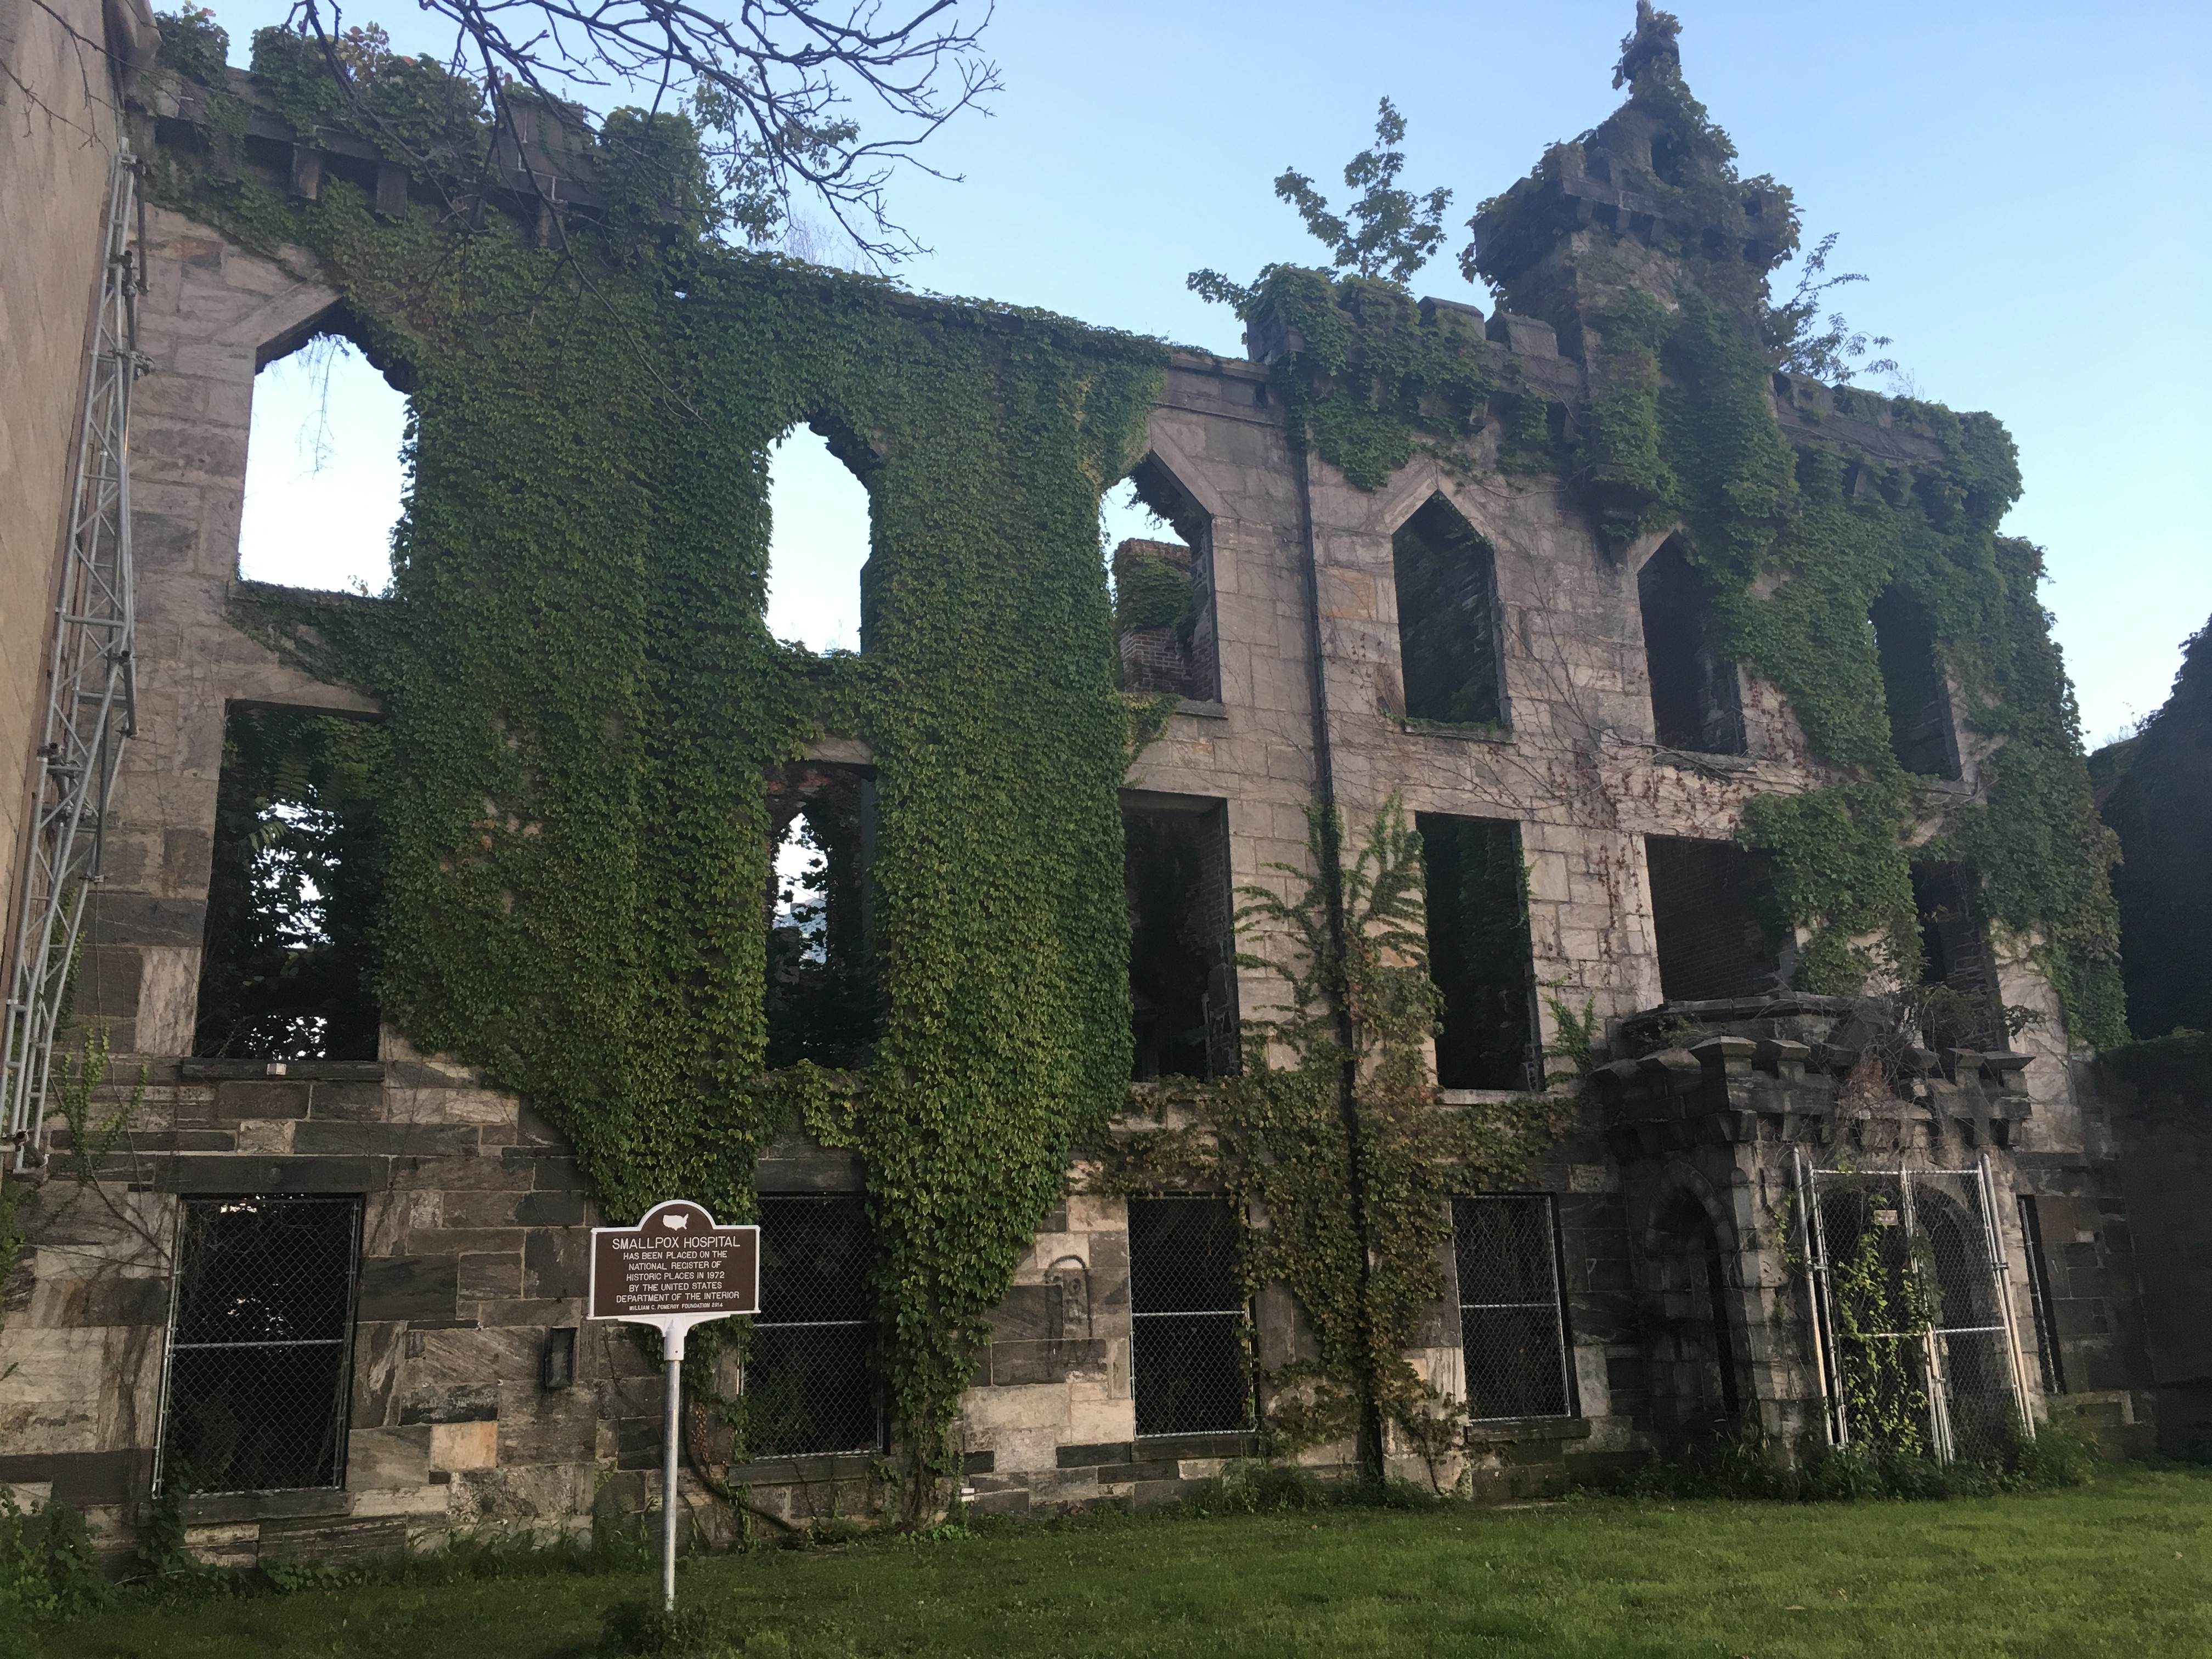 The smallpox hospital on the Island.